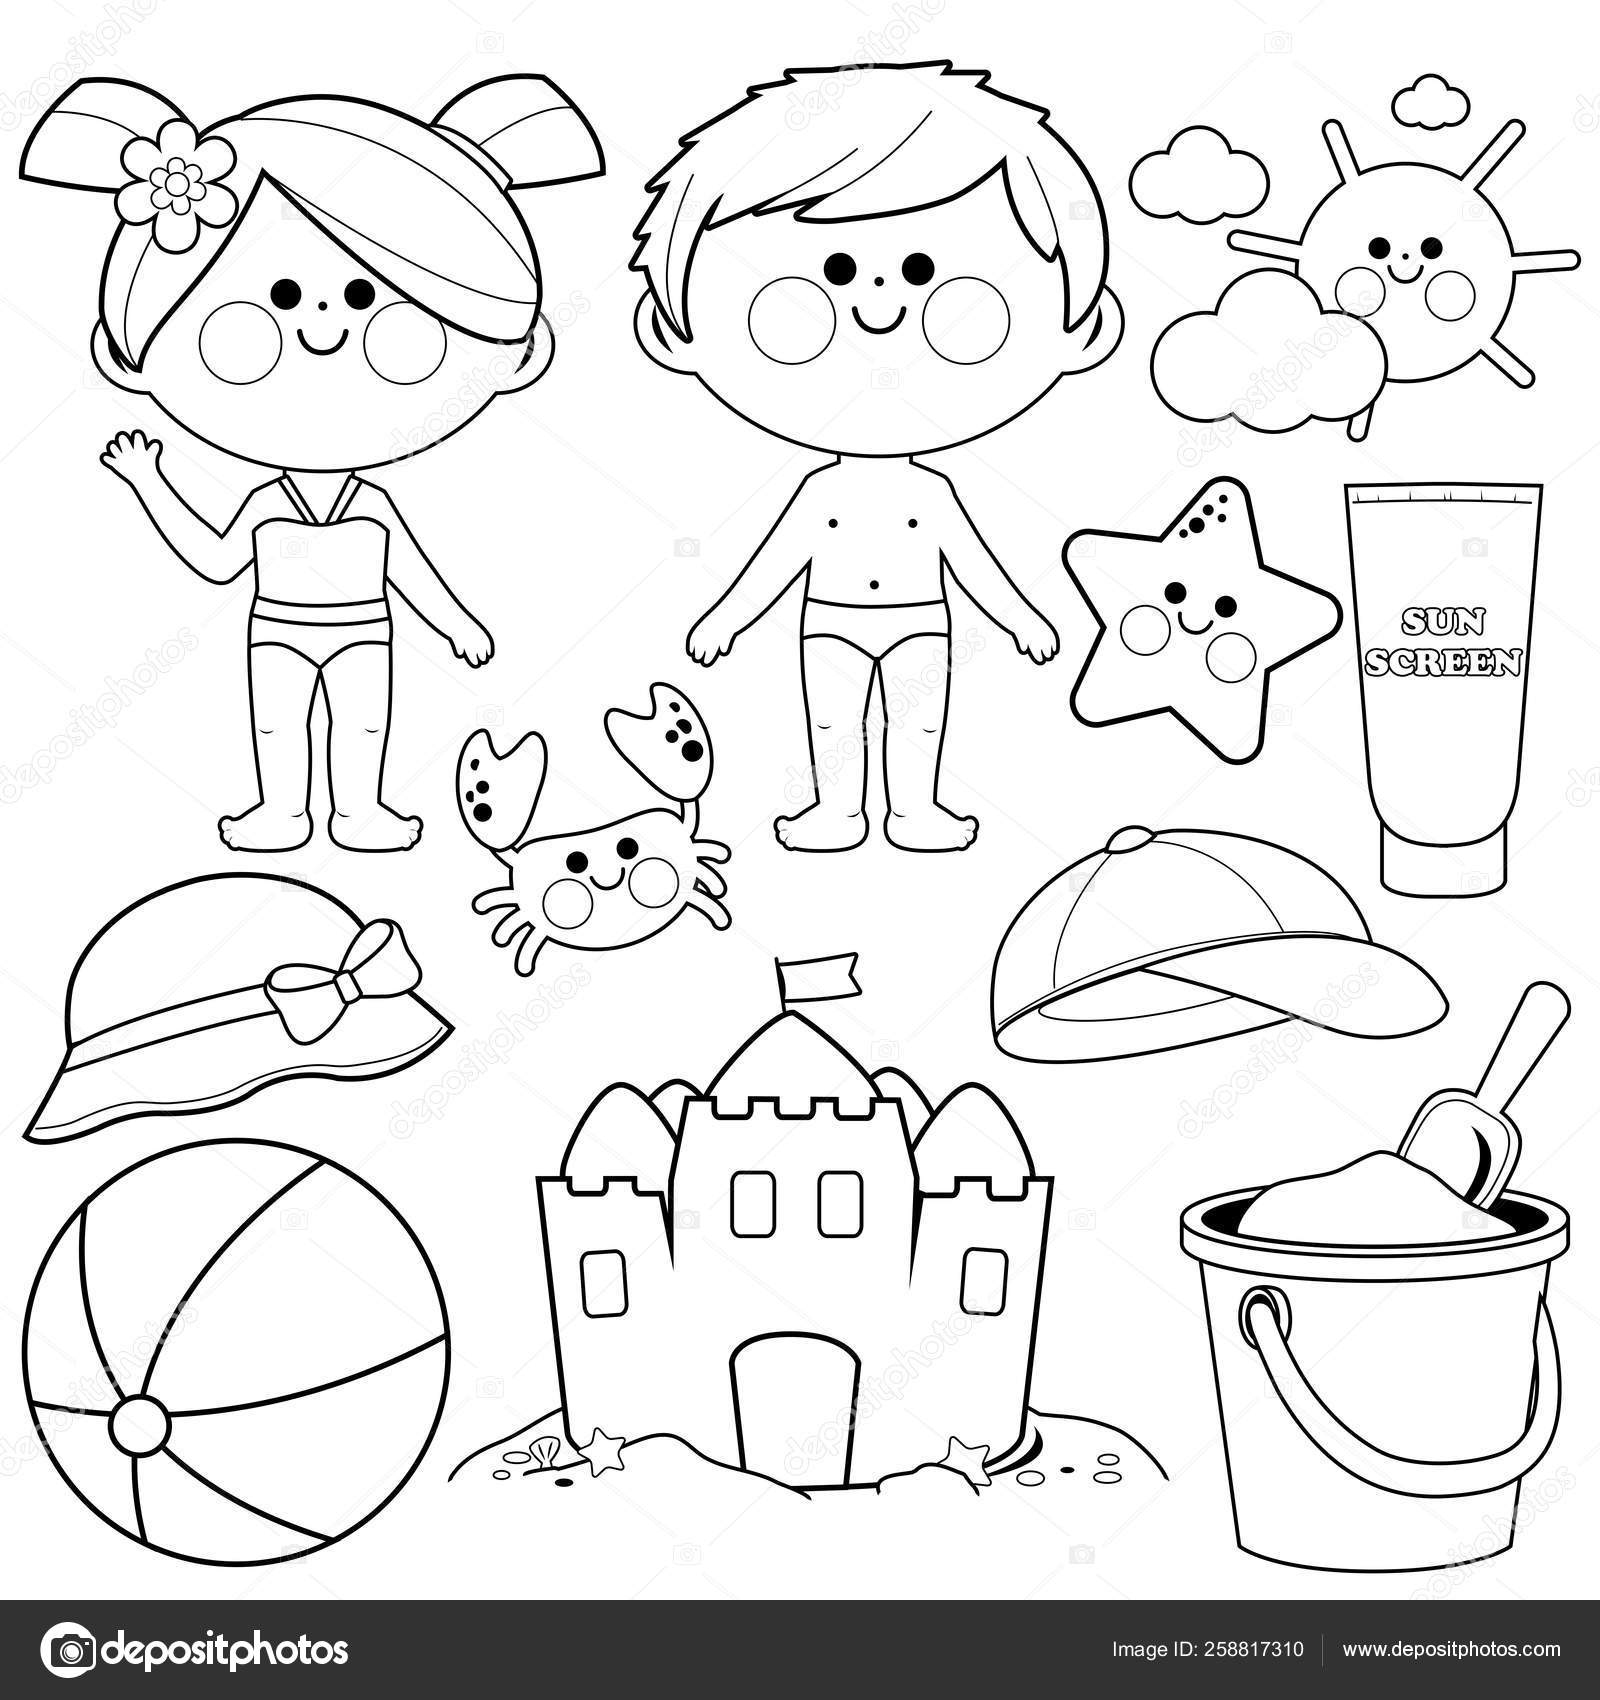 Children With Swimsuits And Beach Summer Vacation Design Elements Black And White Coloring Book Page Stock Vector C Stockakia 258817310